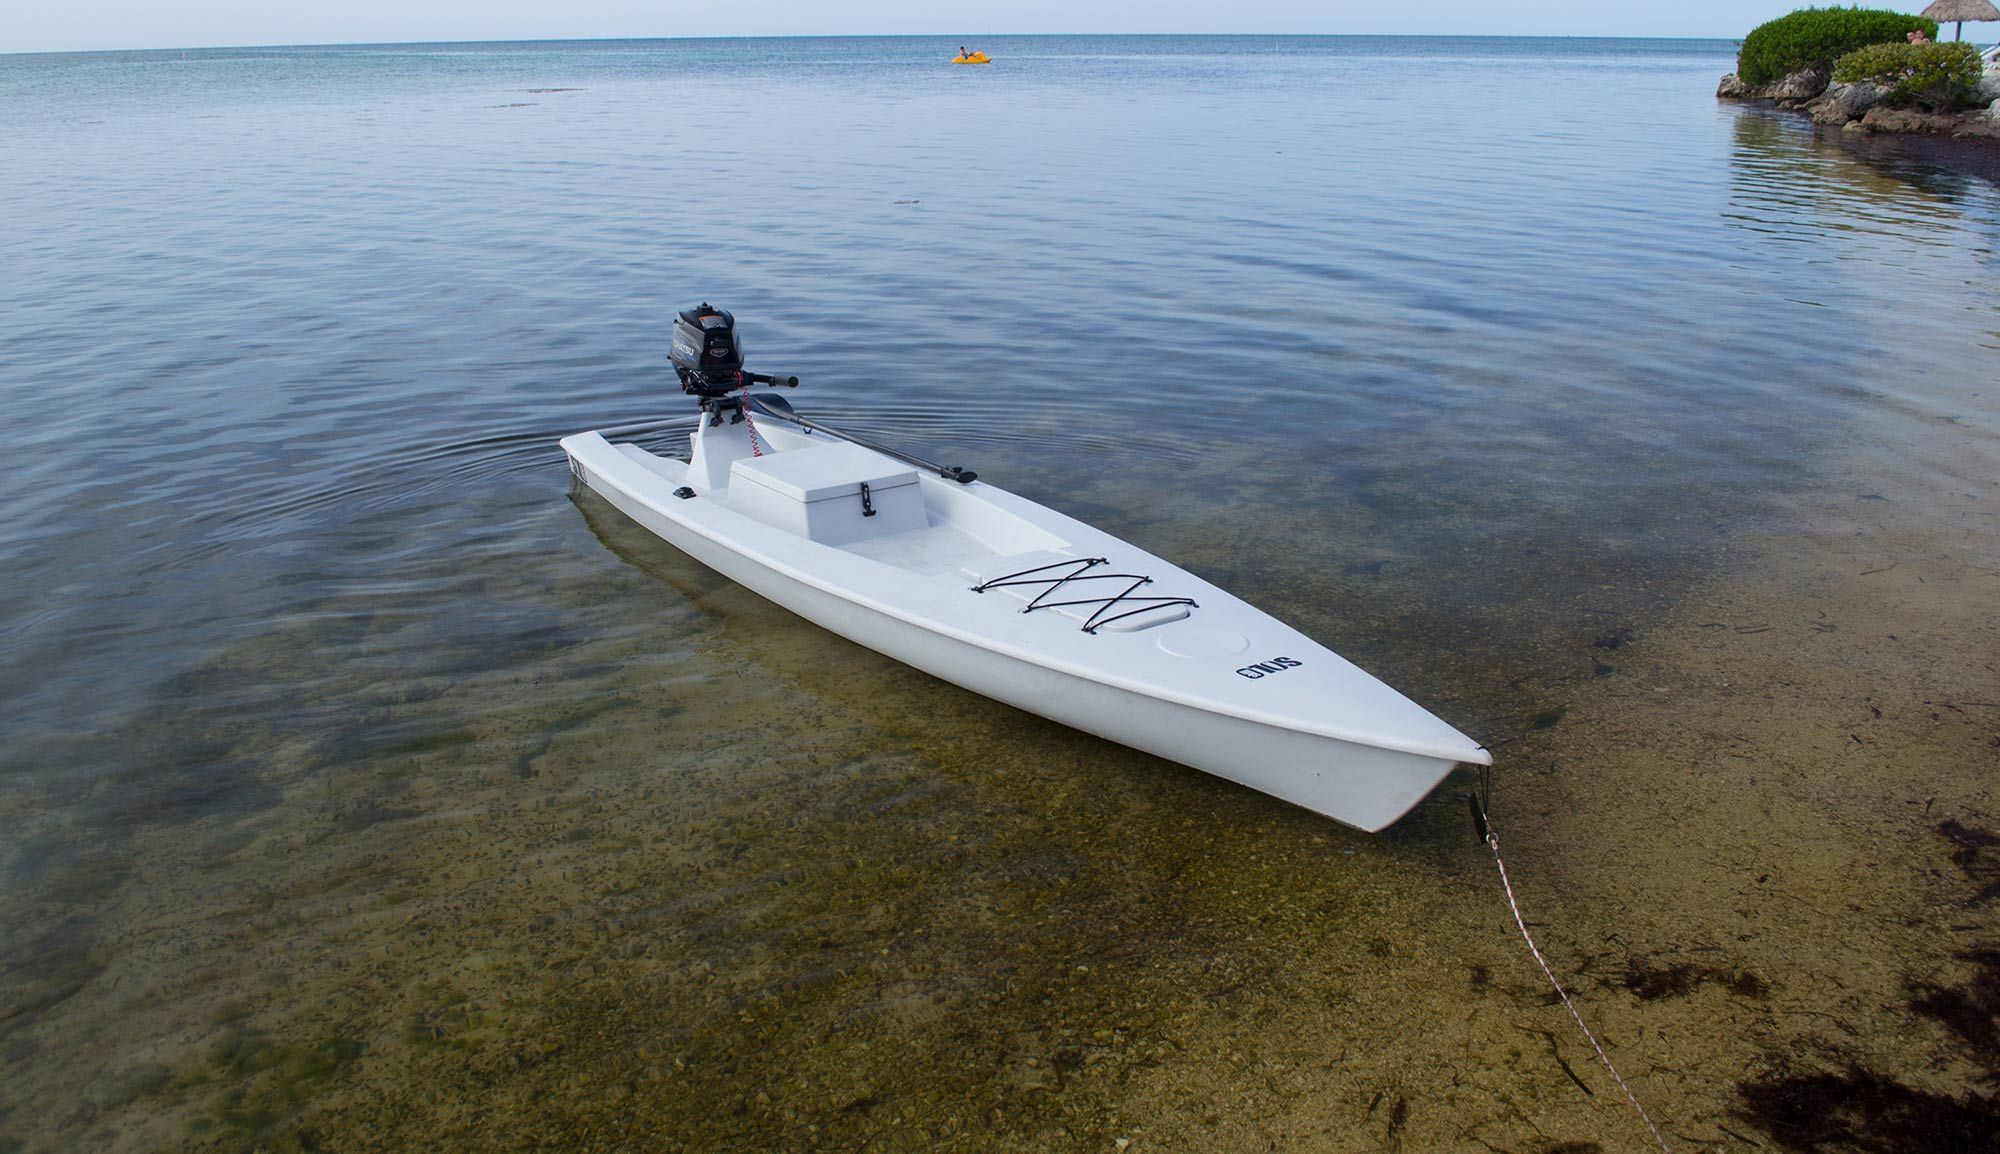 Solo skiff a fishing kayak power boat and sup in one for One man fishing boat